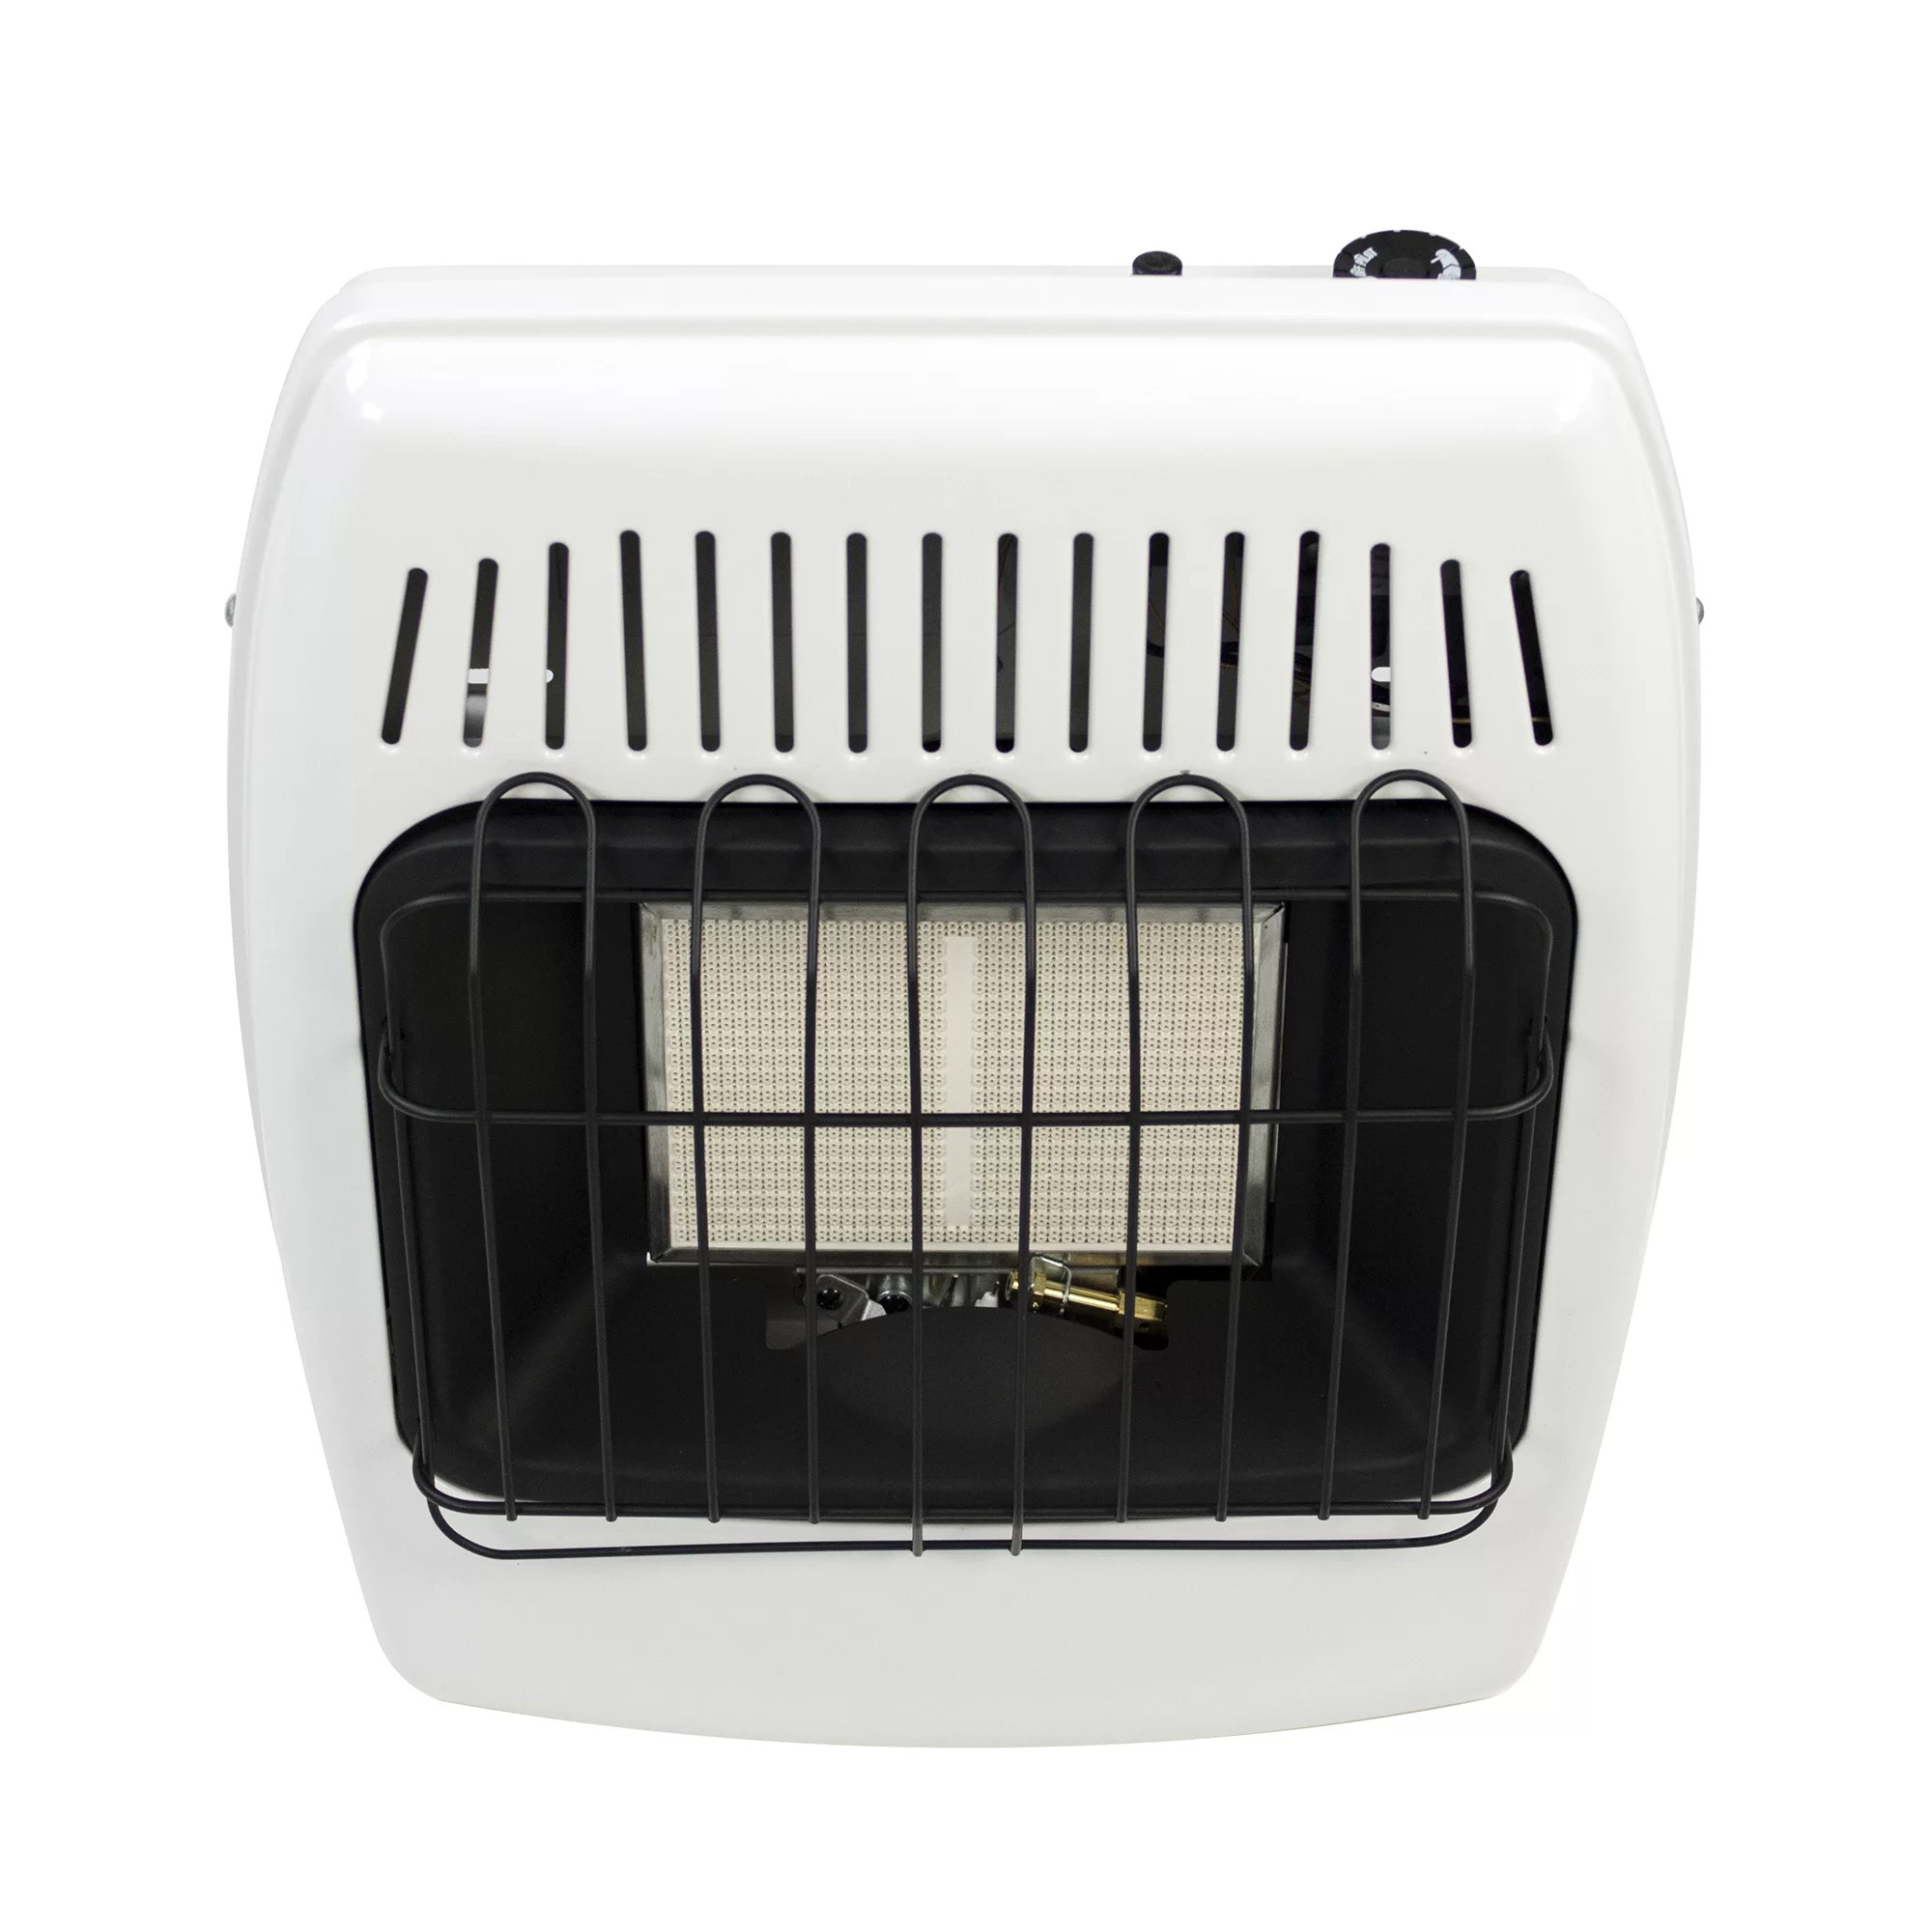 Garage Heater For Dogs 12 000 Btu Wall Mounted Propane Manual Wall Insert Heater